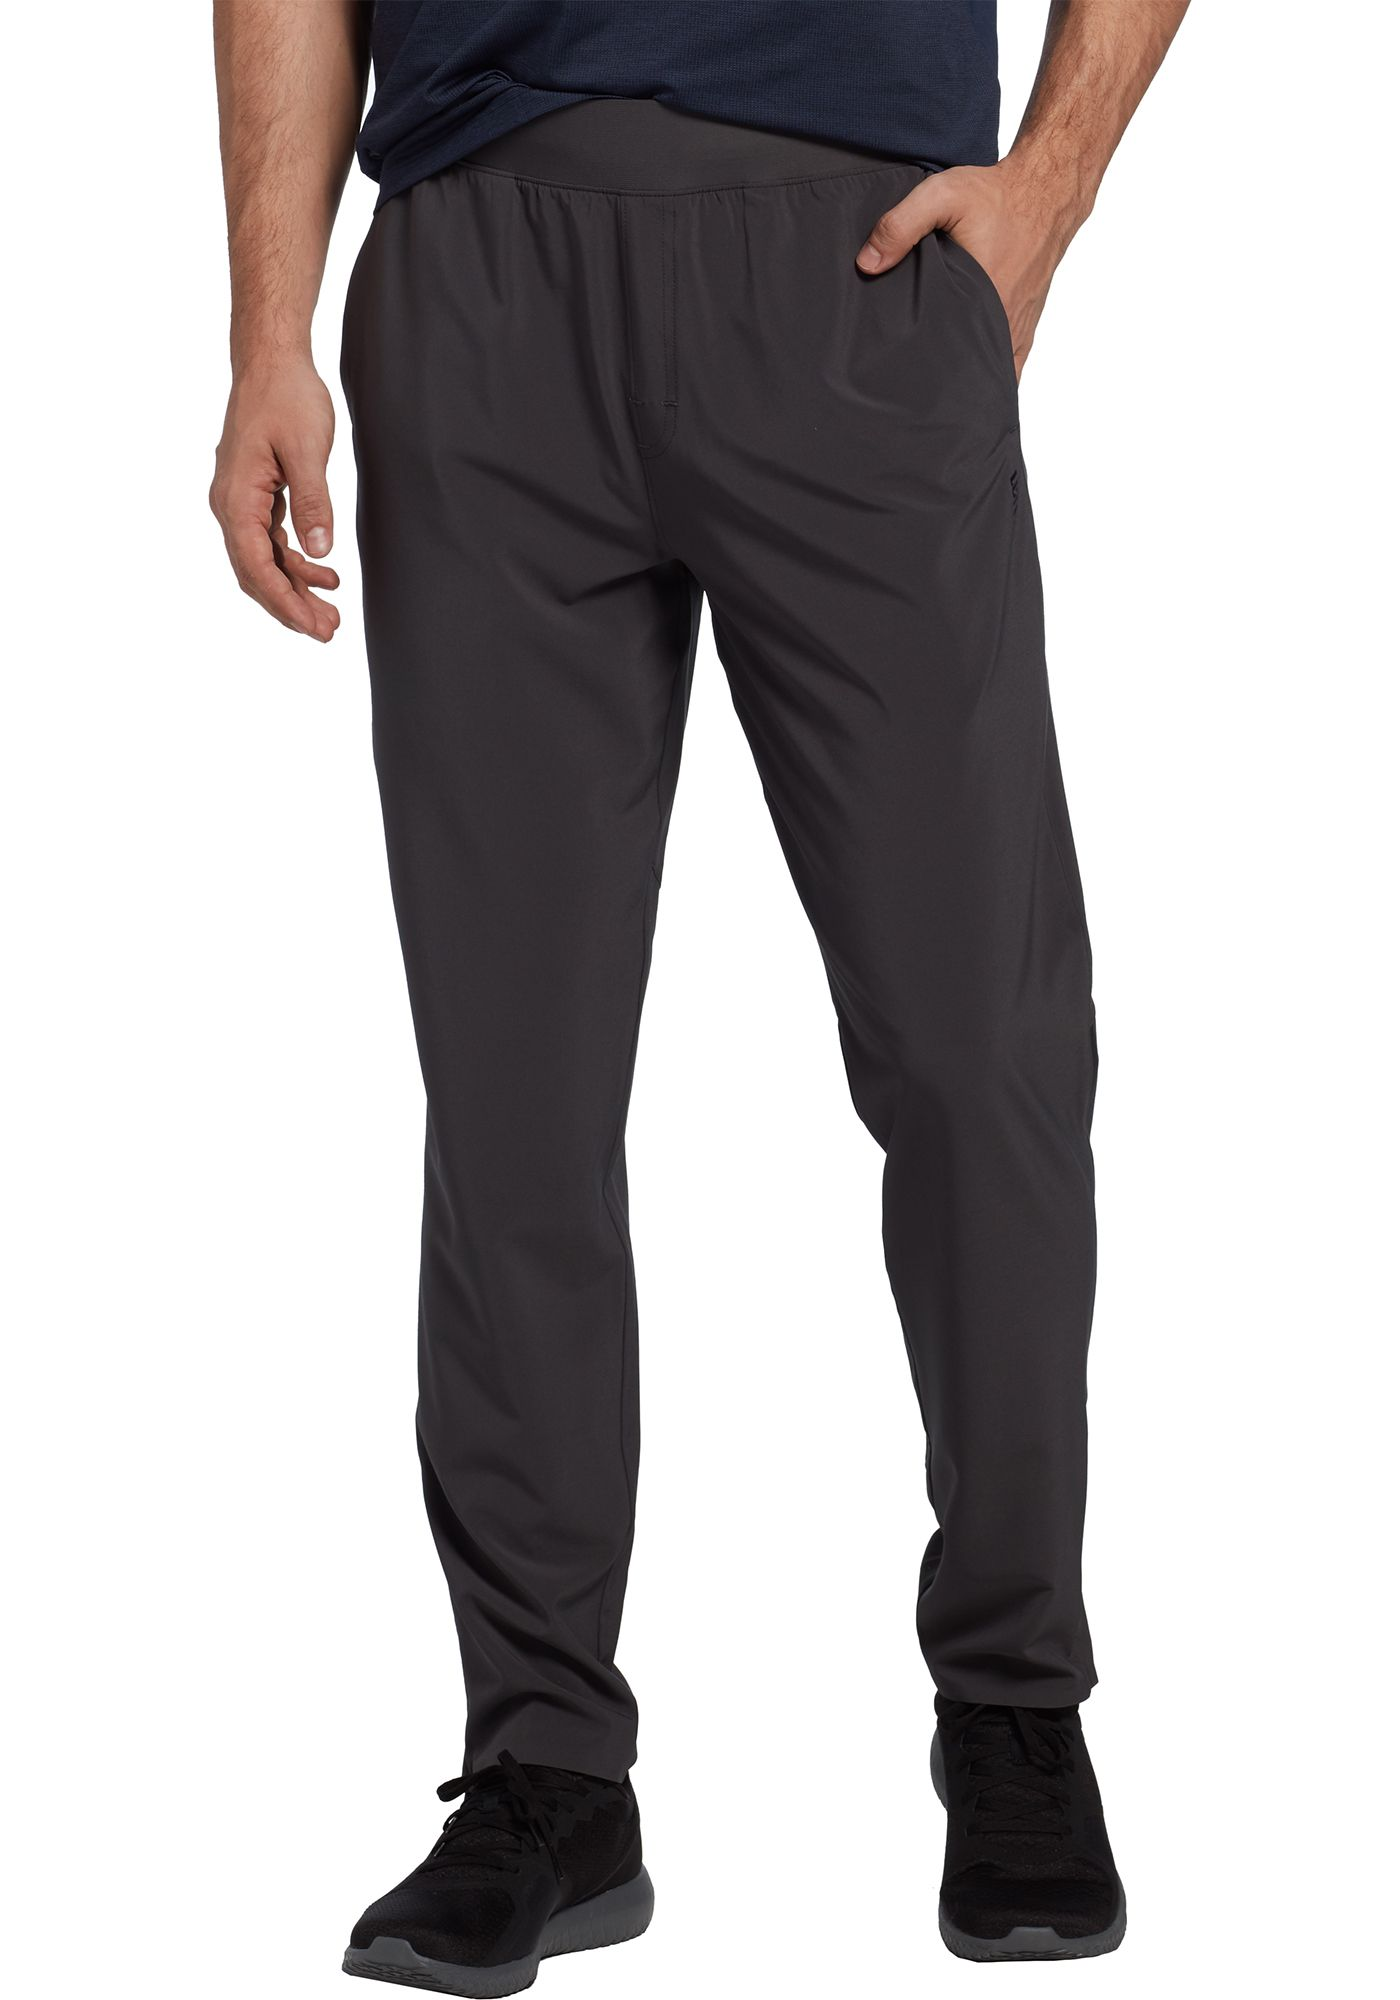 SECOND SKIN Men's Stretch Woven Taper Pants